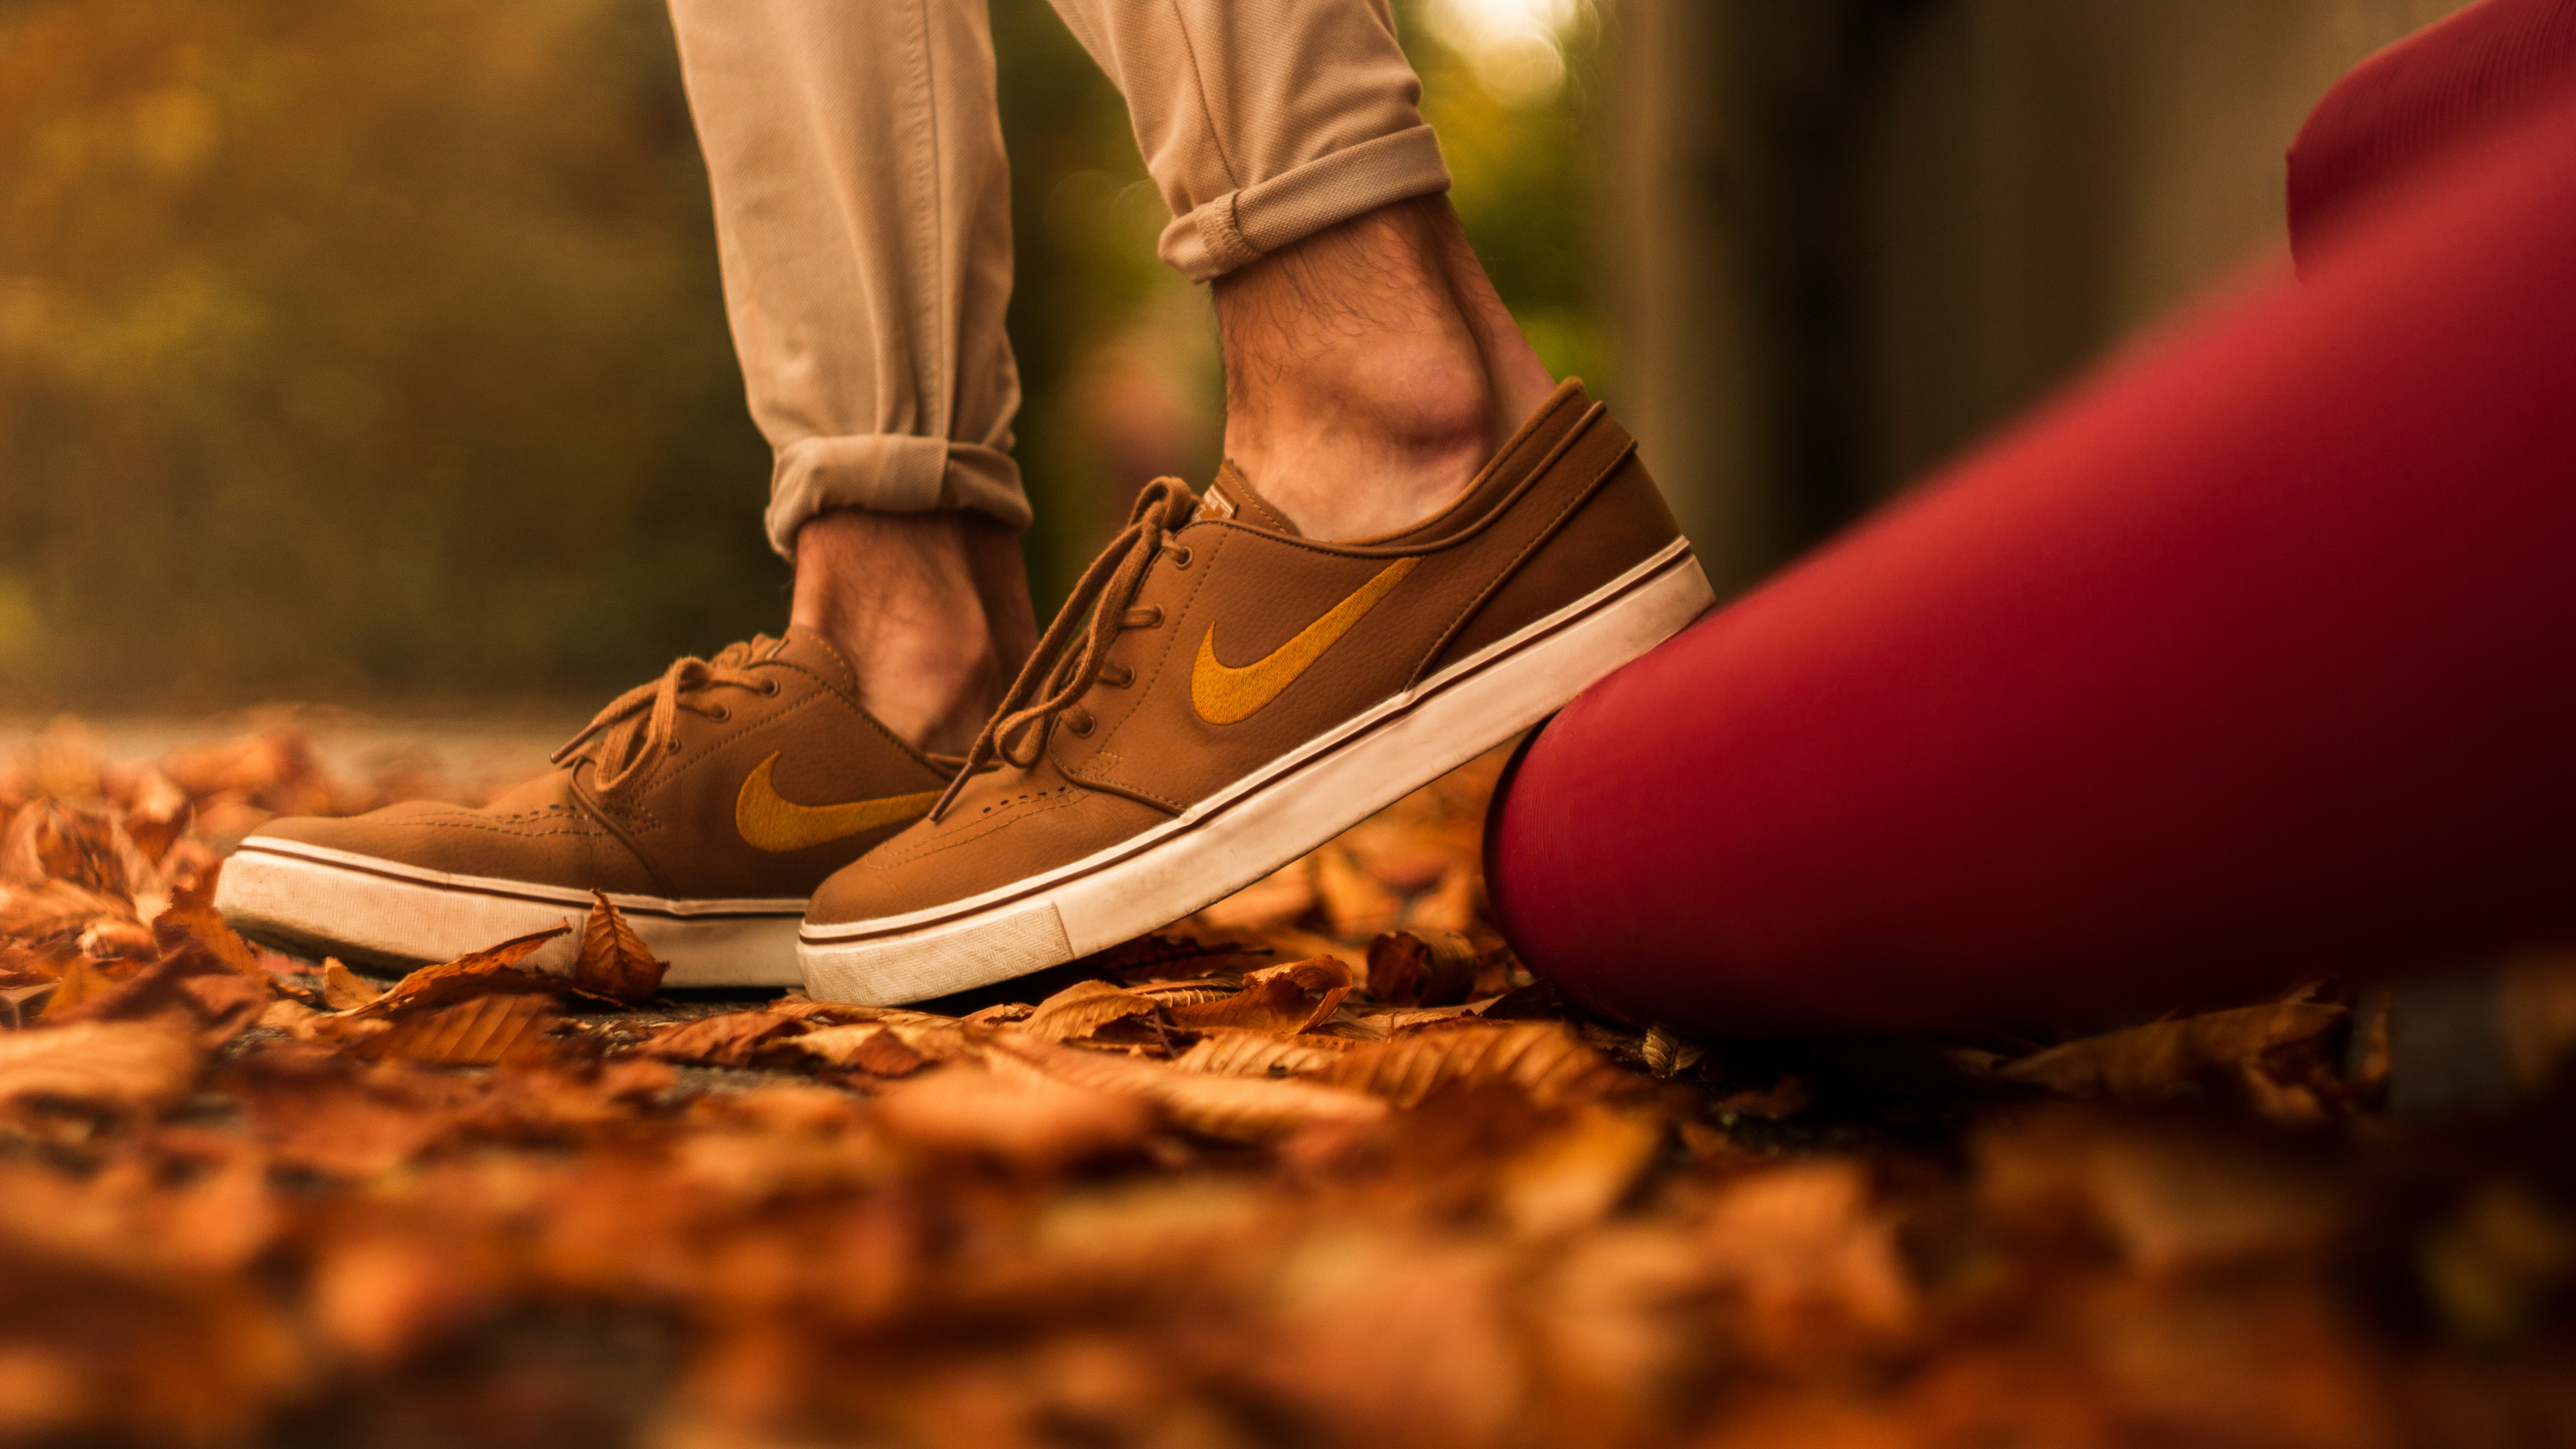 low-angle photo of person wearing pair of brown Nike sneakers